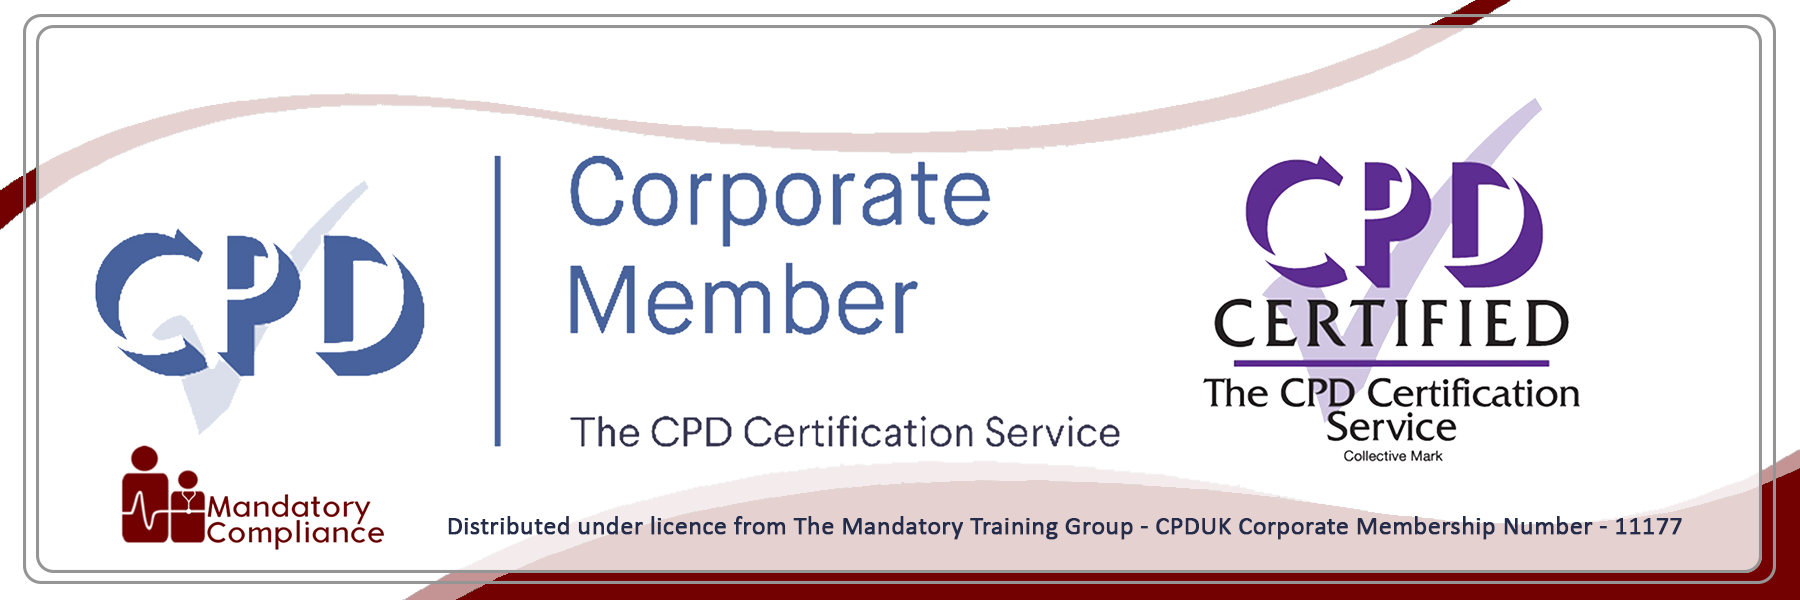 Stress Management in Dental Practice - Enhanced Dental CPD Course - E-Learning Courses - Mandatory Compliance UK-